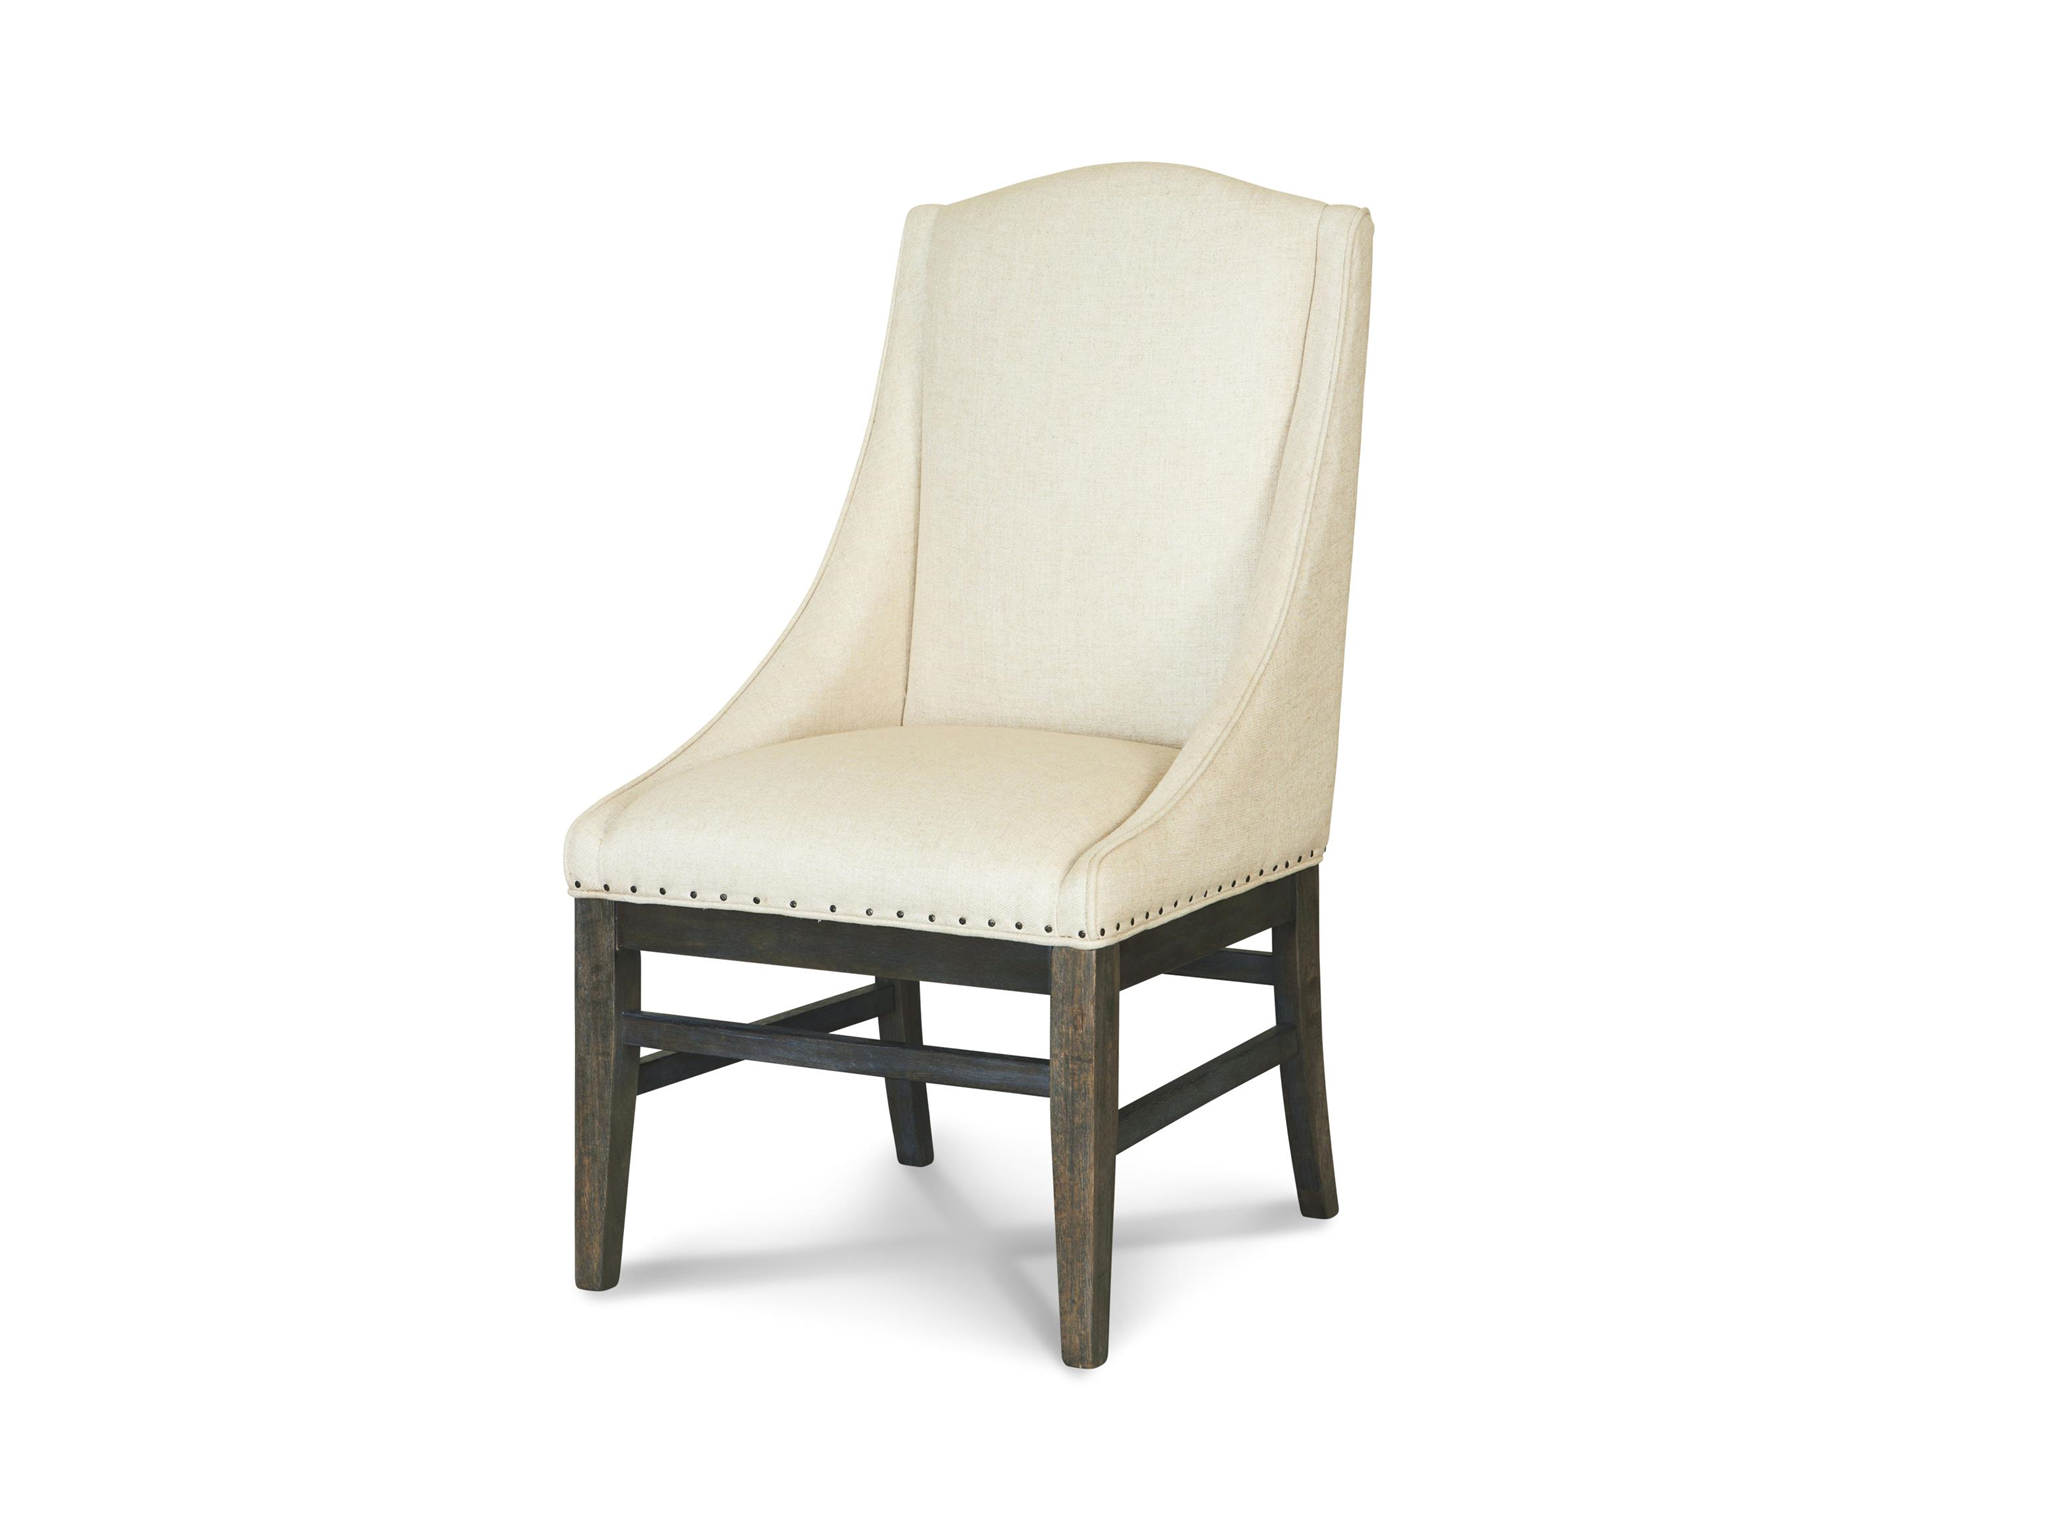 Superior Urban Arm Chair #1 - ... Urban Arm Chair ...